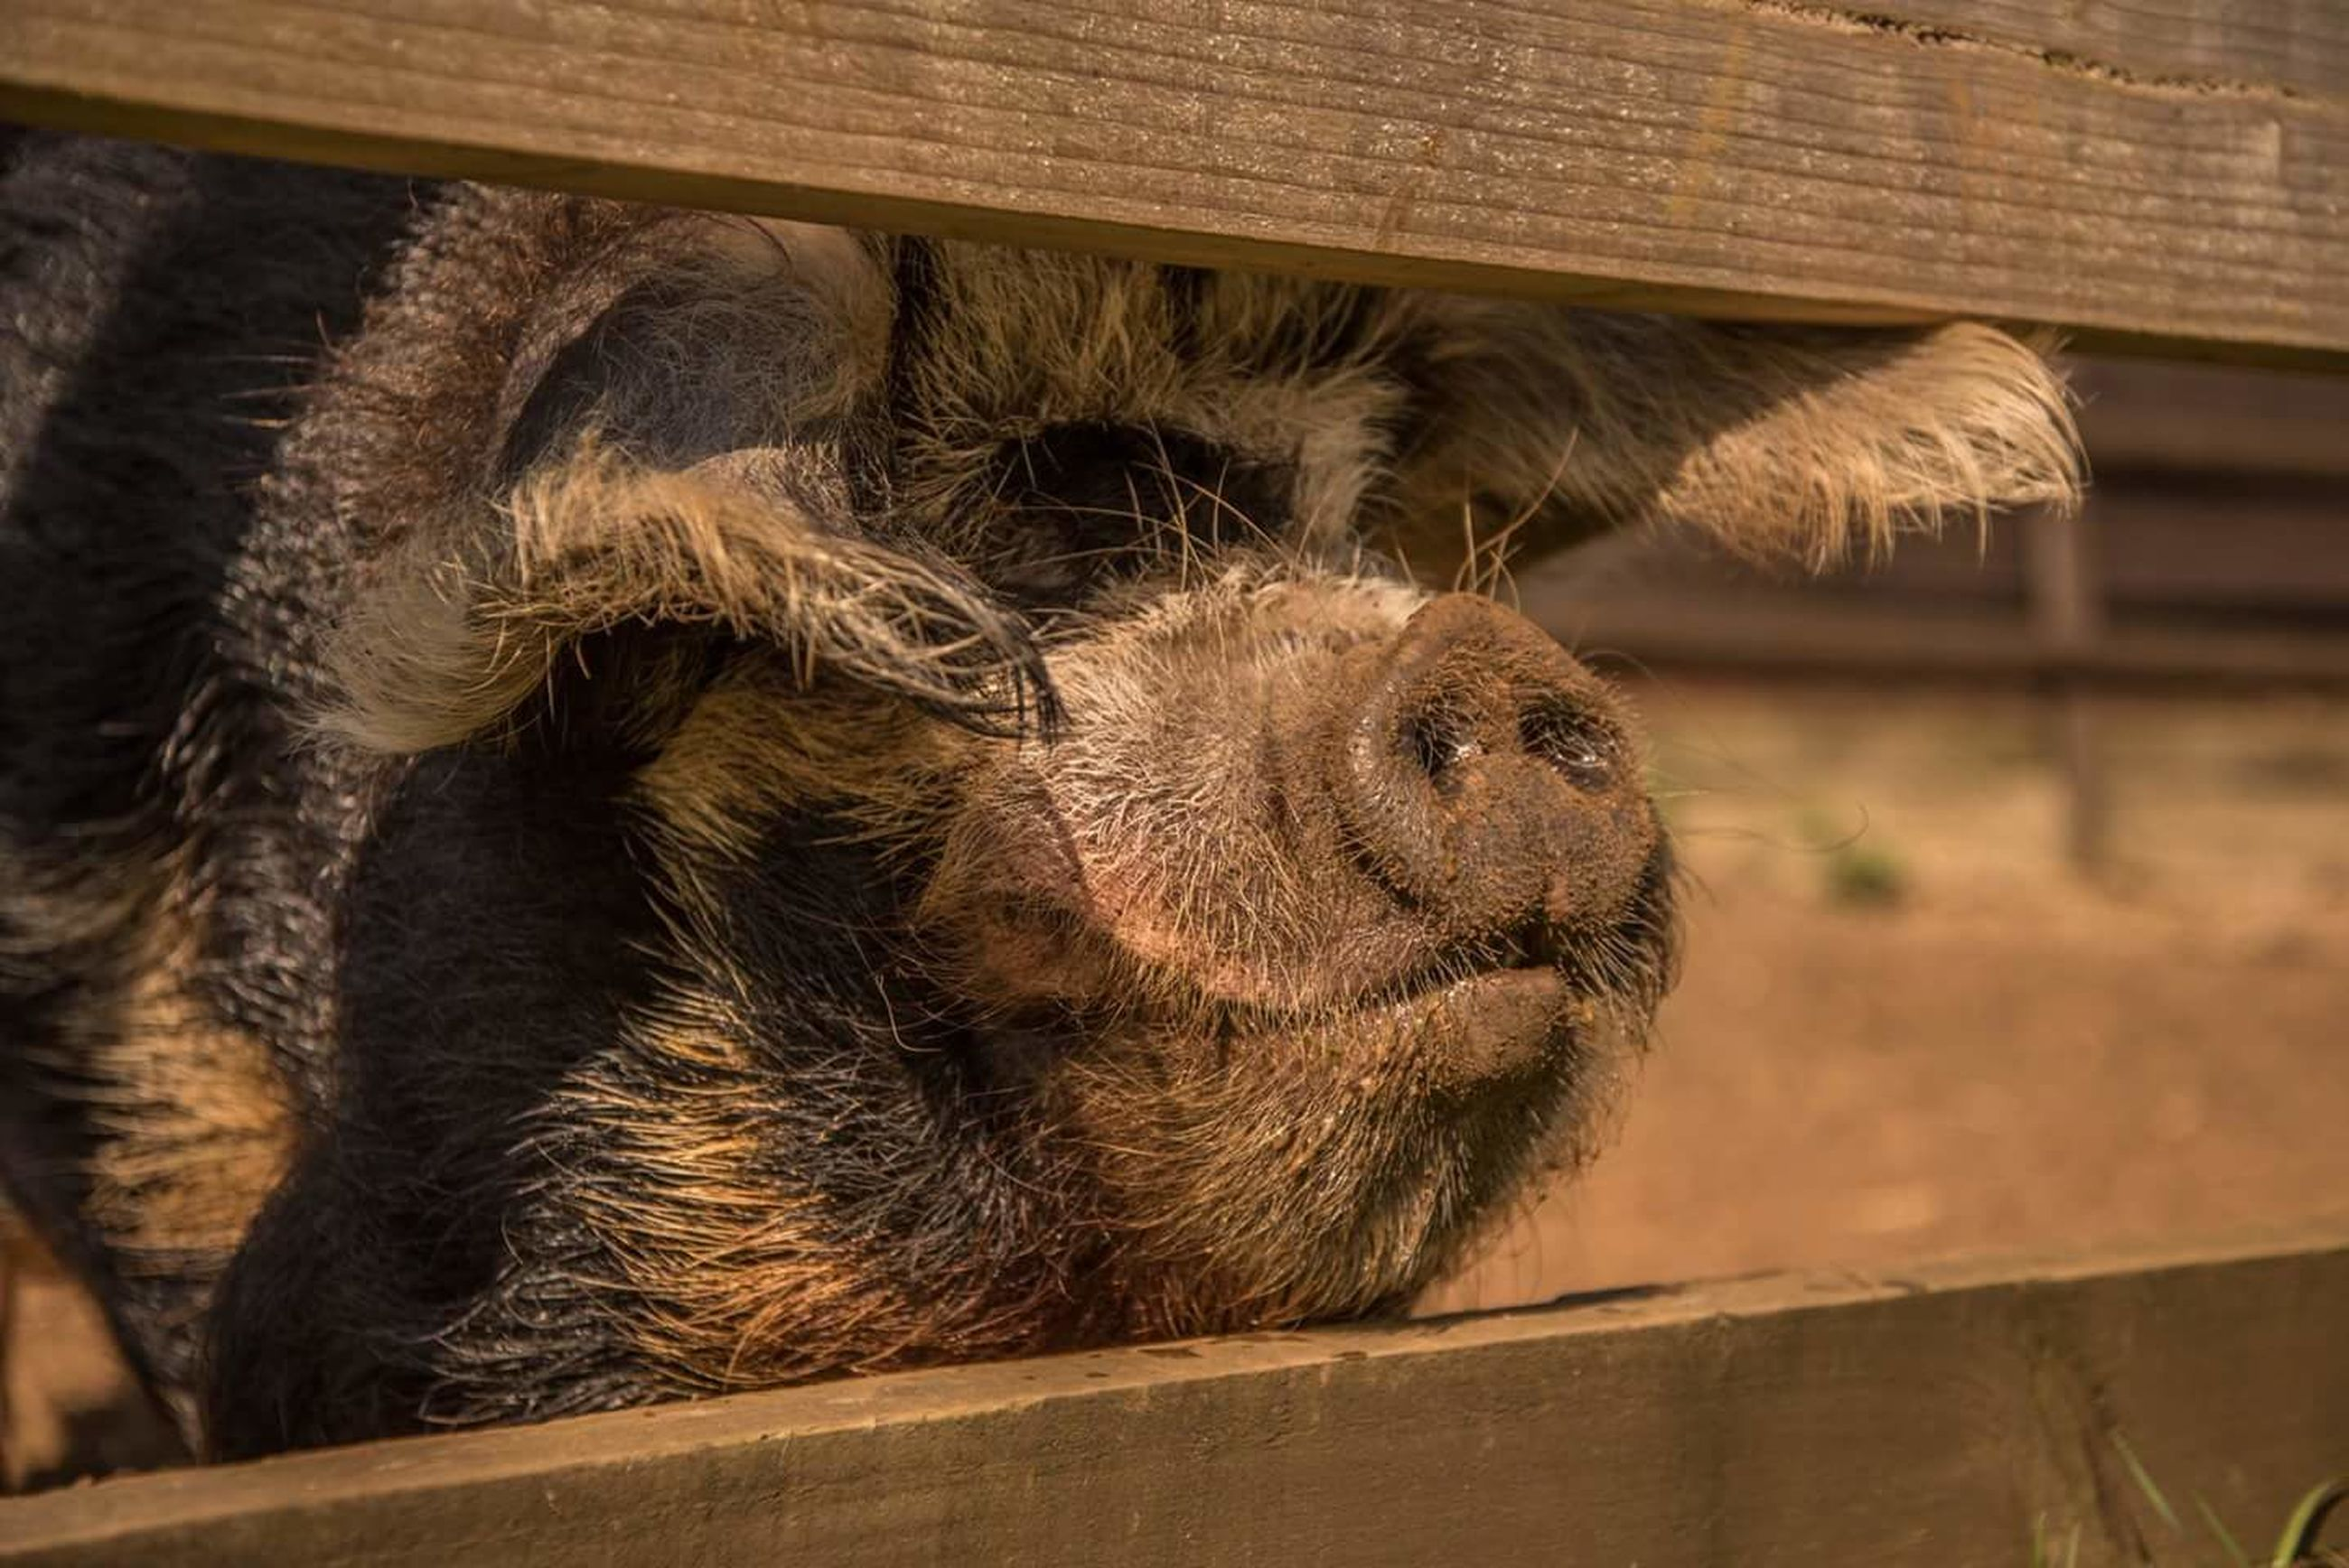 mammal, animal themes, animal, one animal, no people, vertebrate, animal wildlife, close-up, day, relaxation, animals in the wild, animal body part, pets, domestic animals, wood - material, focus on foreground, domestic, outdoors, fence, boundary, animal head, herbivorous